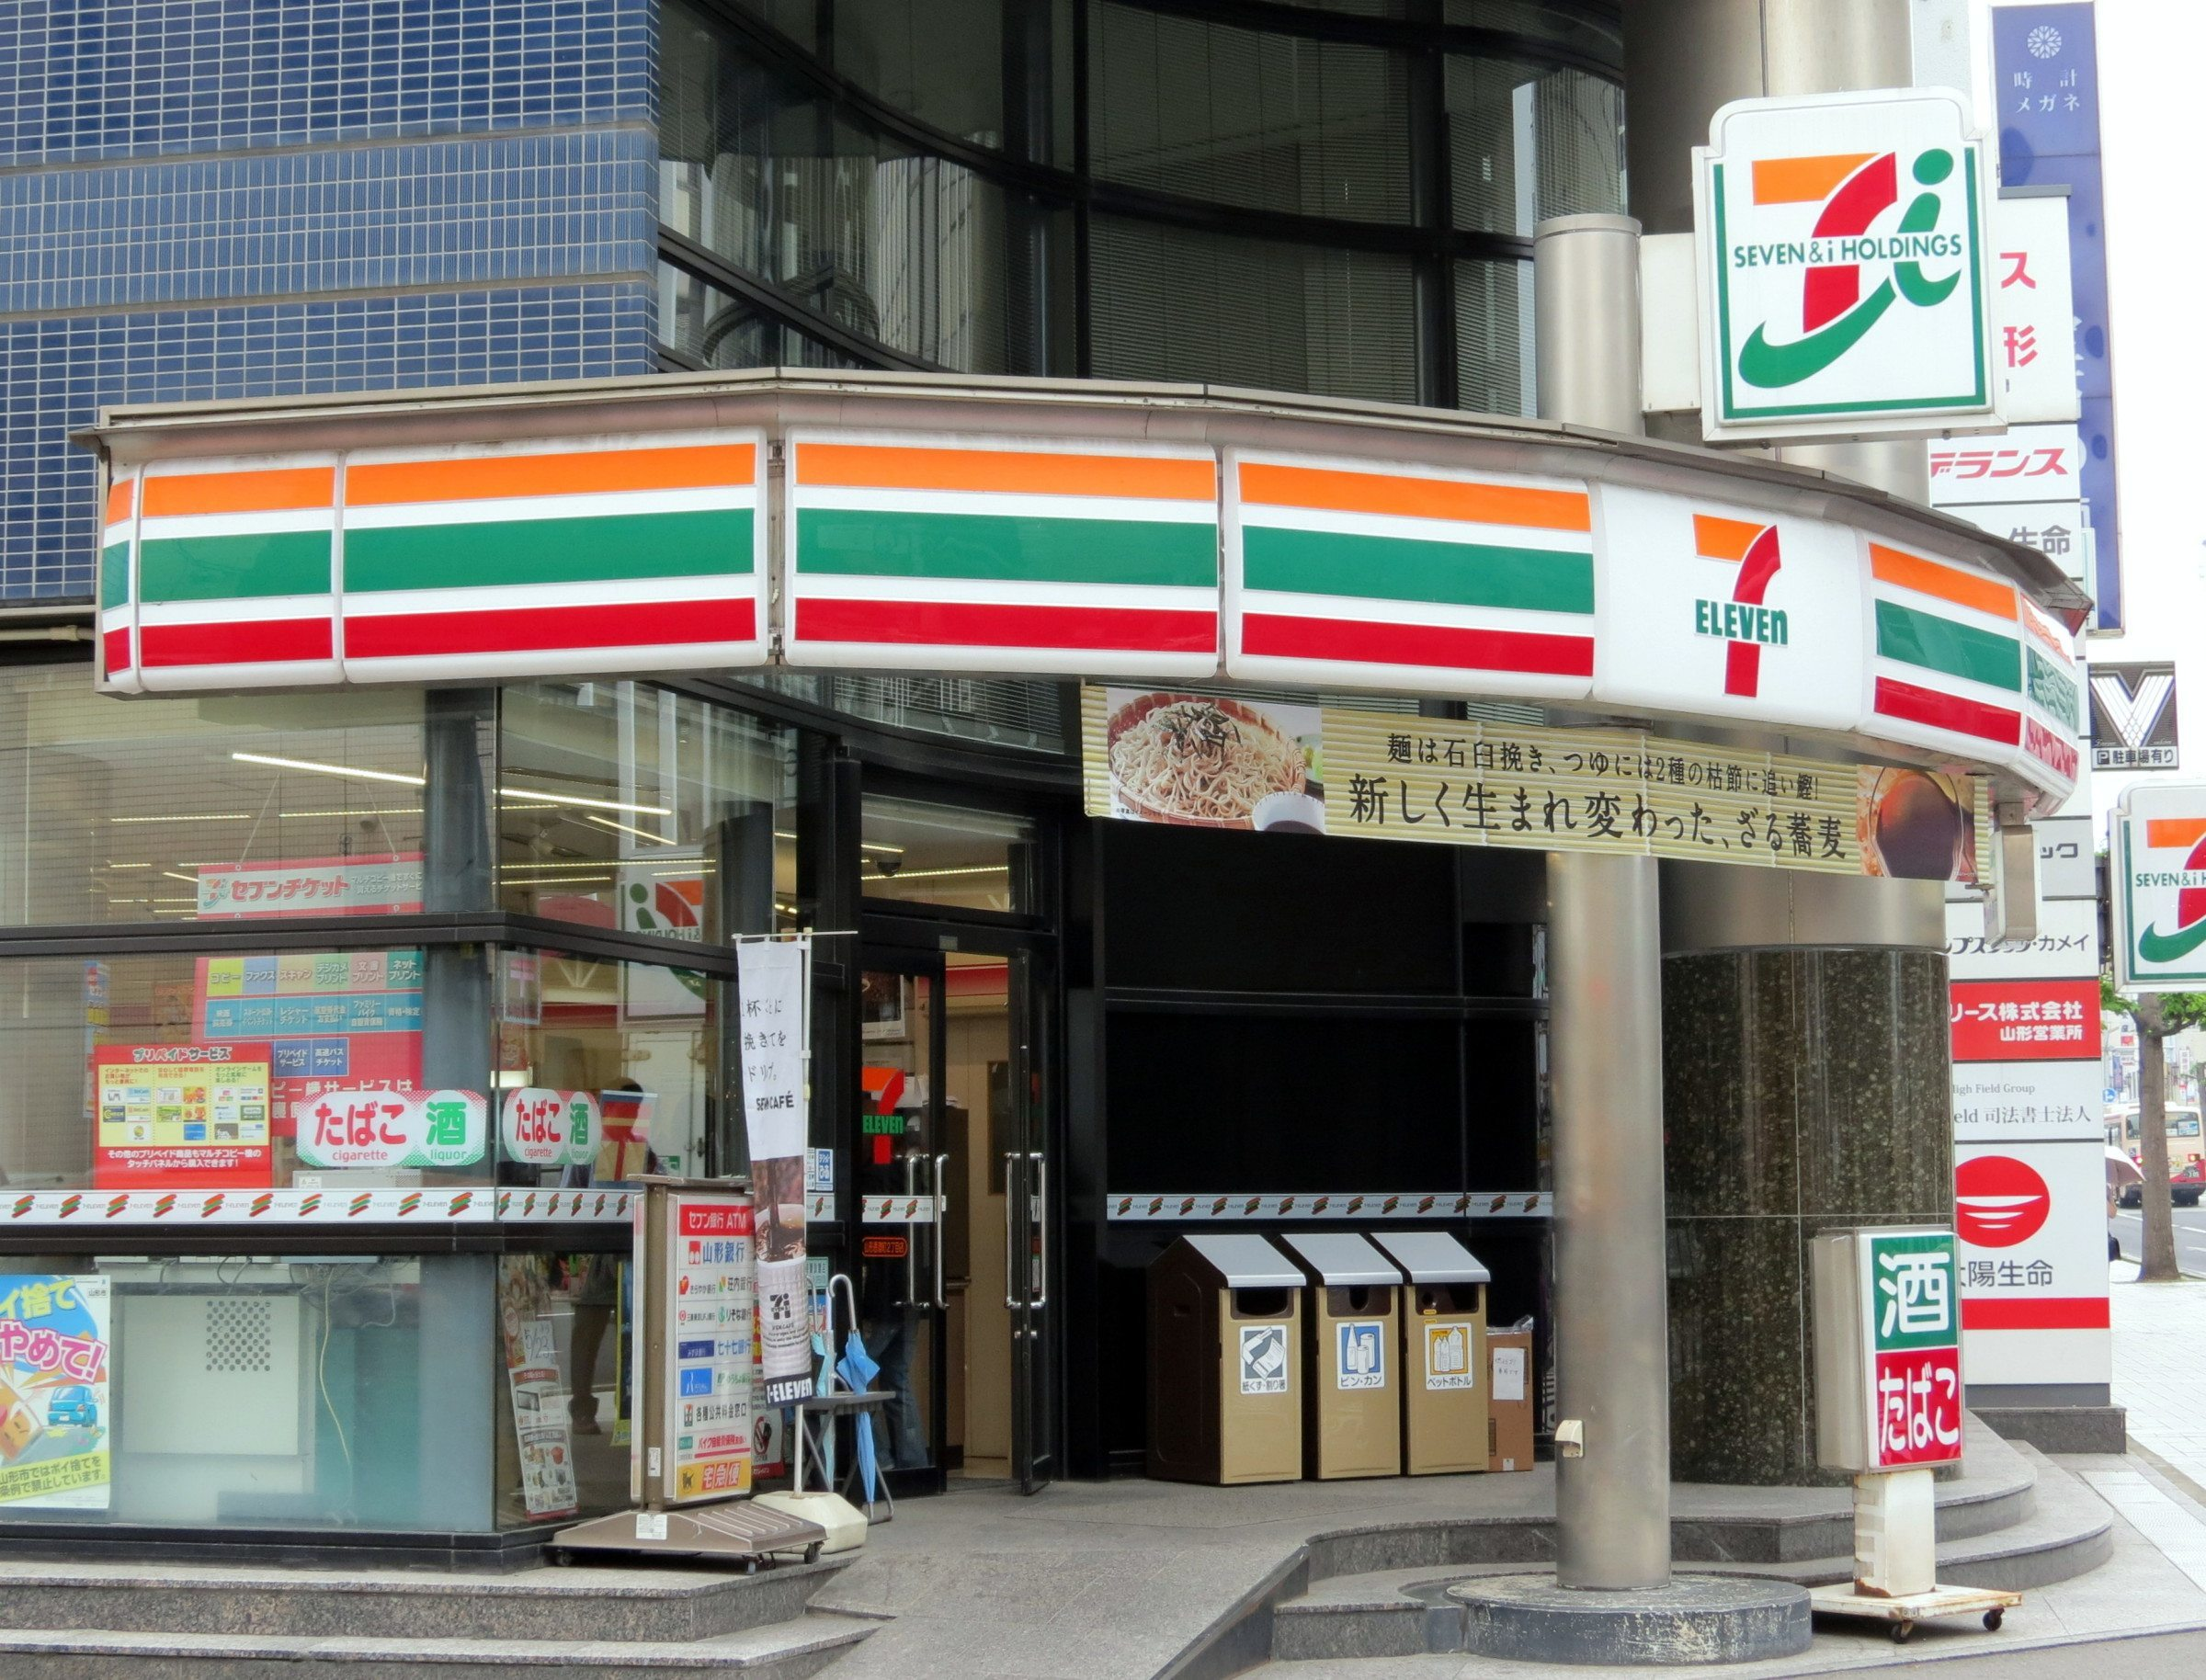 7-Eleven: One of Japan's many convenient convenience stores